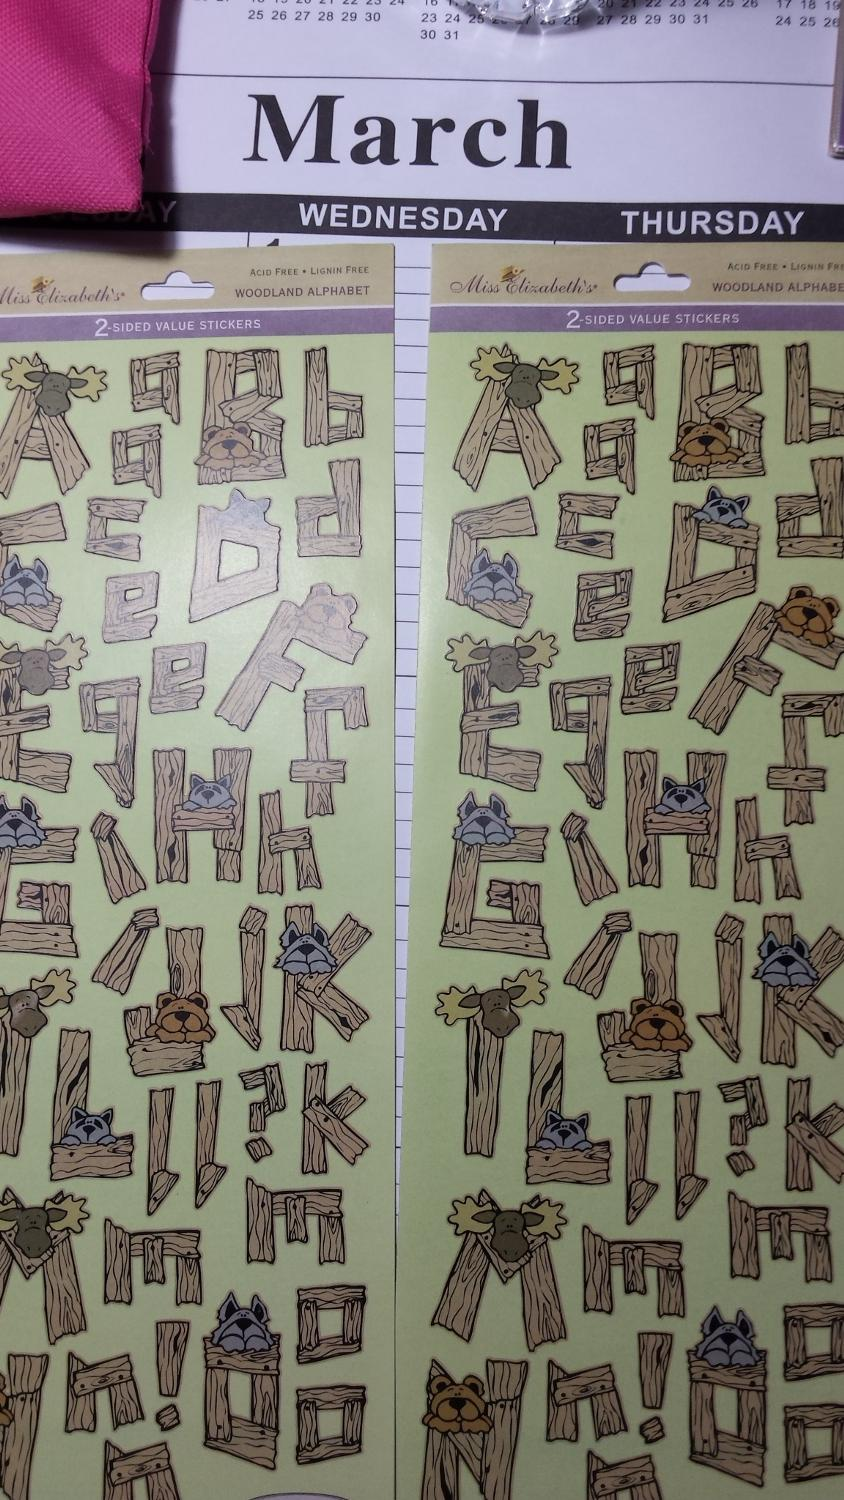 Find more miss elizabeth woodland alphabet stickers for for Craft stores manchester nh